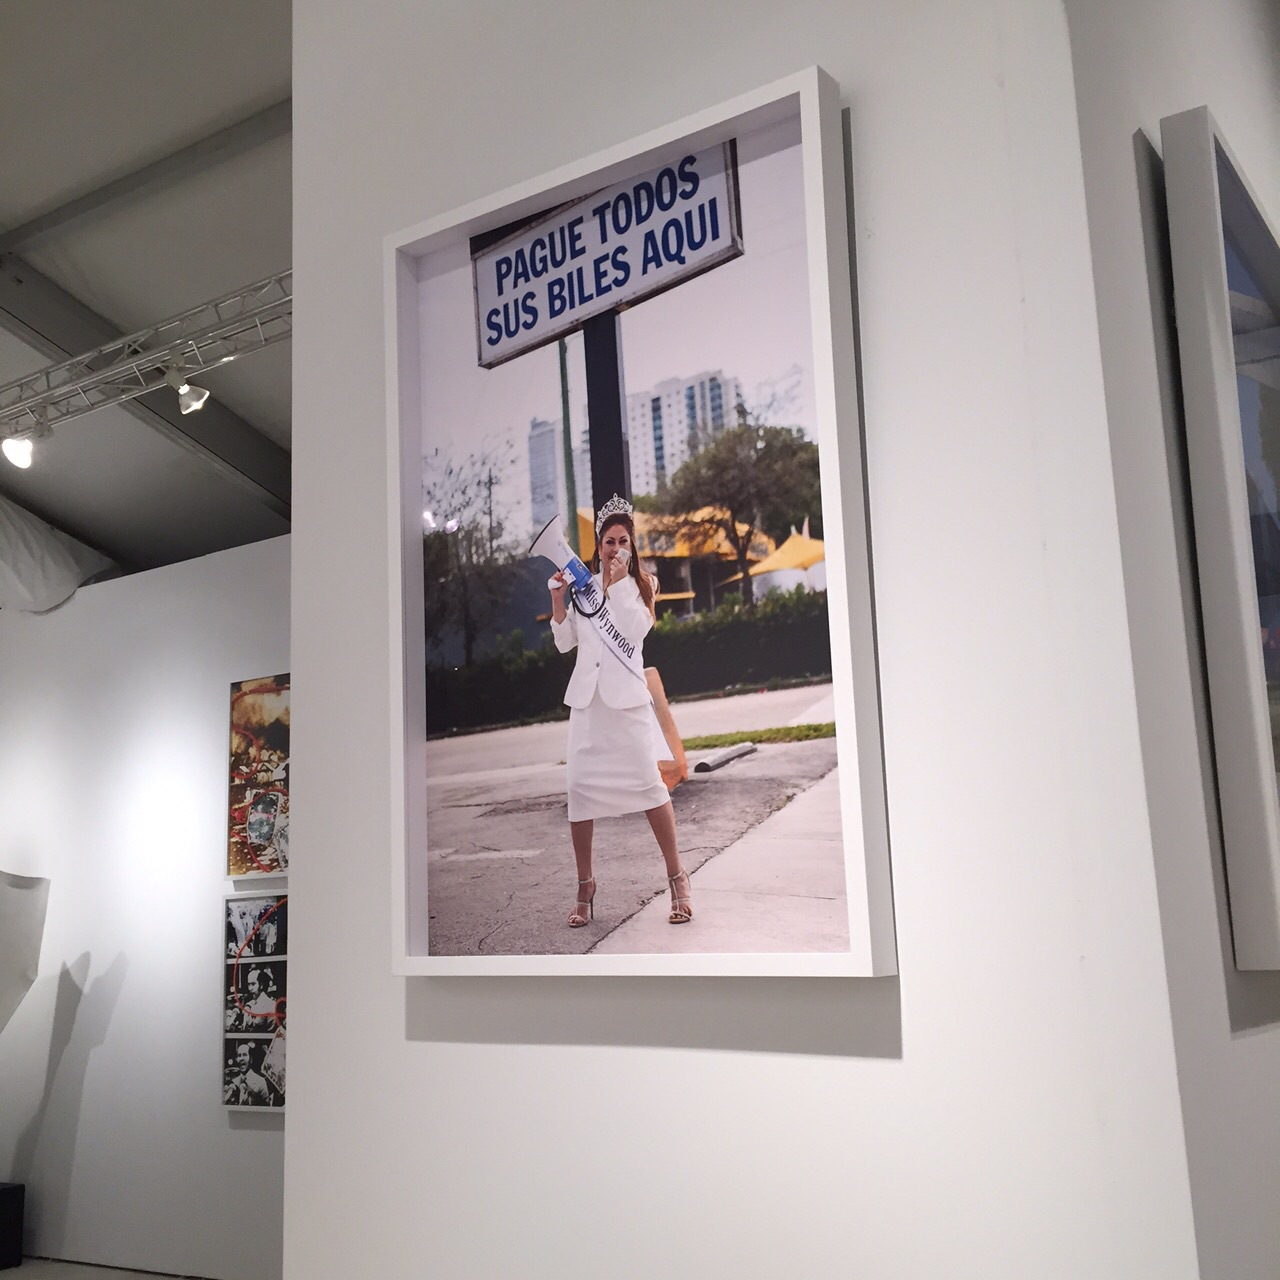 nina-dotti-art-fairs-biennials-art-wynwood-miss-wynwood-5.jpg